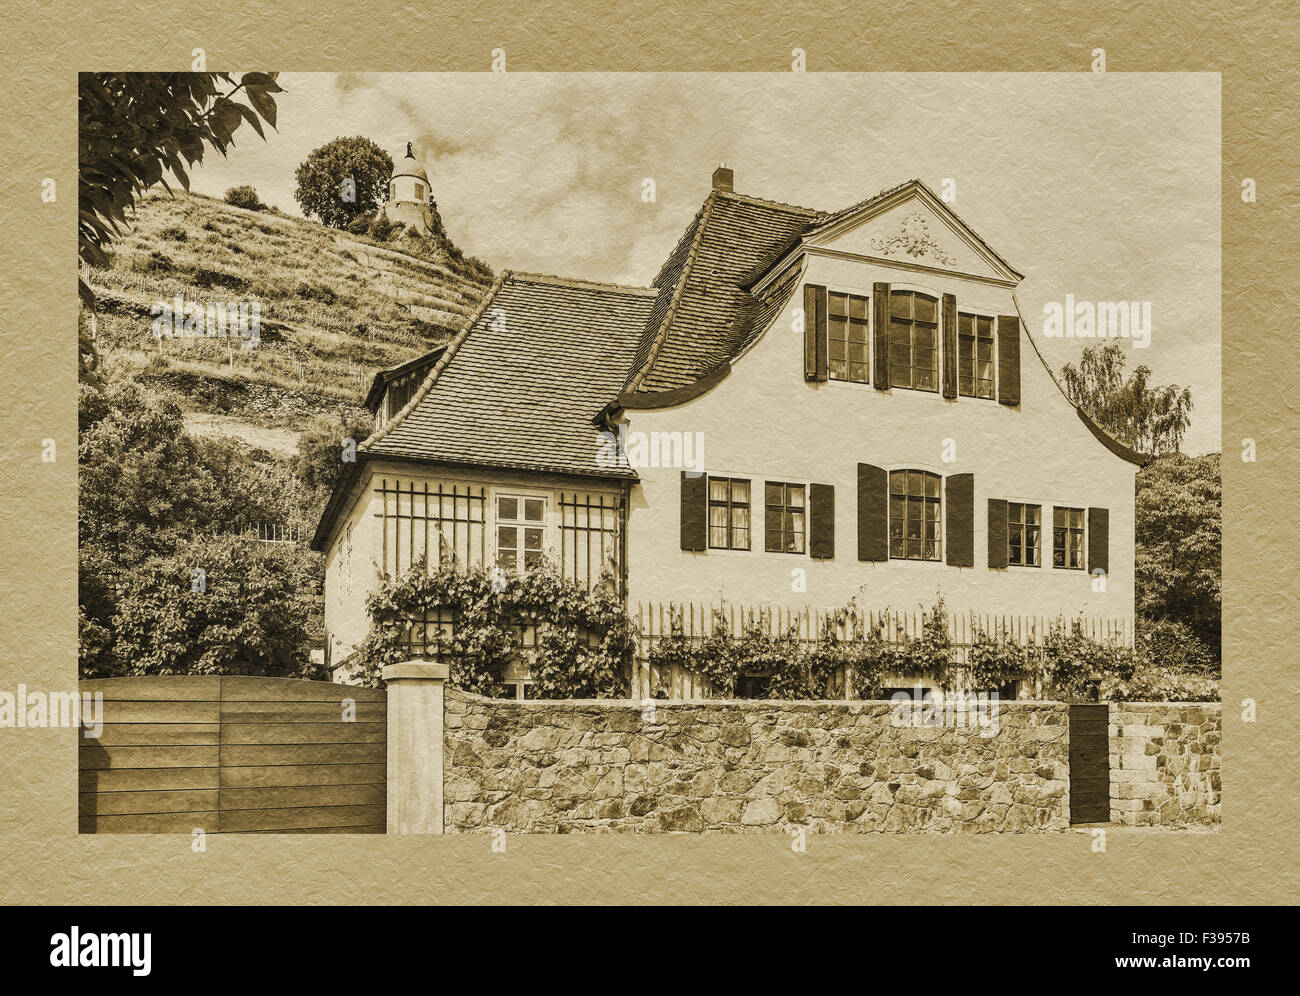 House Fliegenwedel, Am Jacobstein 40, is a listed building and Baroque winegrower's House, Radebeul, Saxony, Germany, Stock Photo